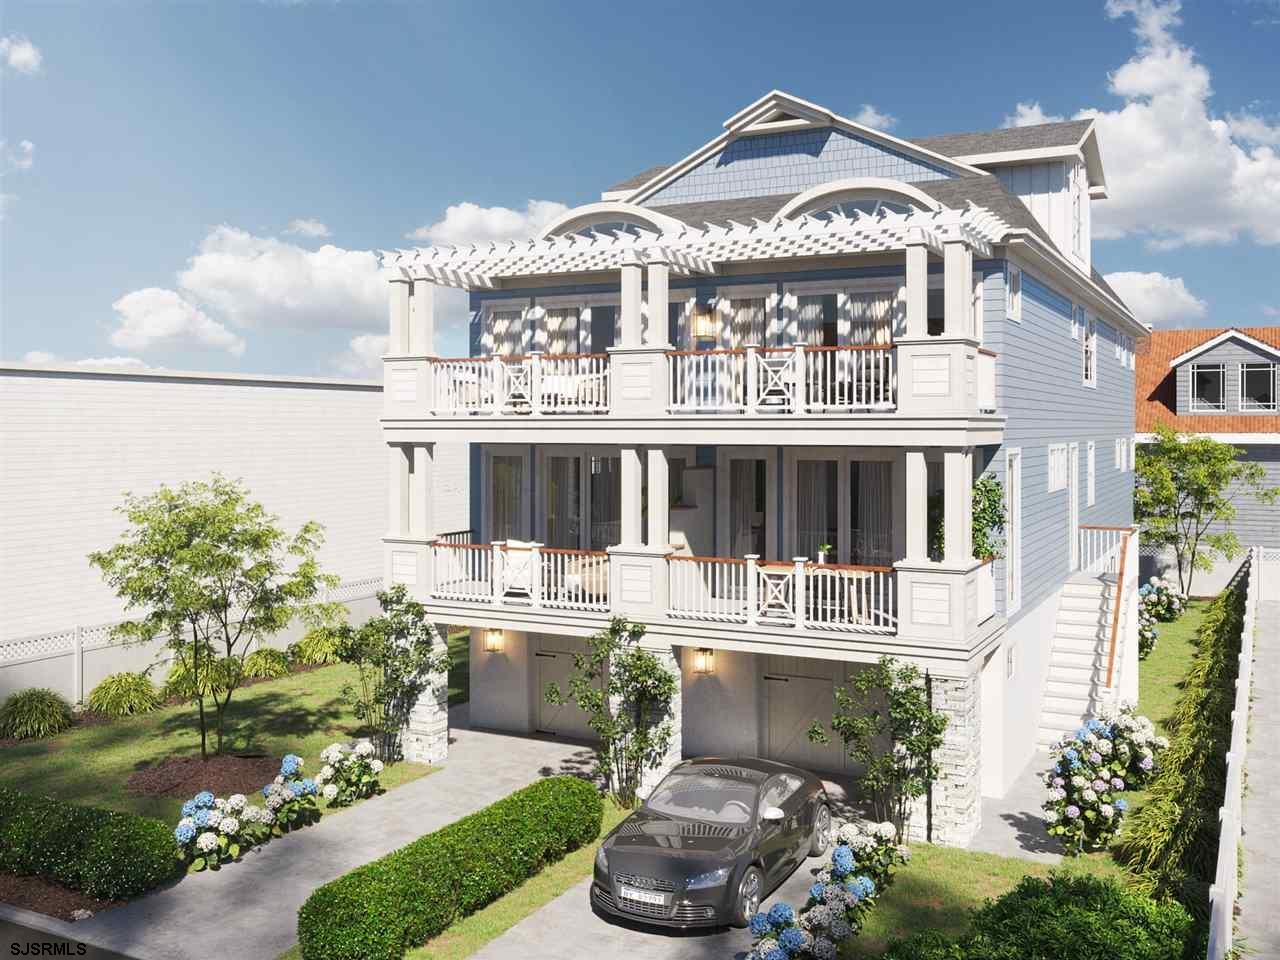 Luxury new construction in Margate's Presidential Streets by S. Baglivo. This four level, spacious t